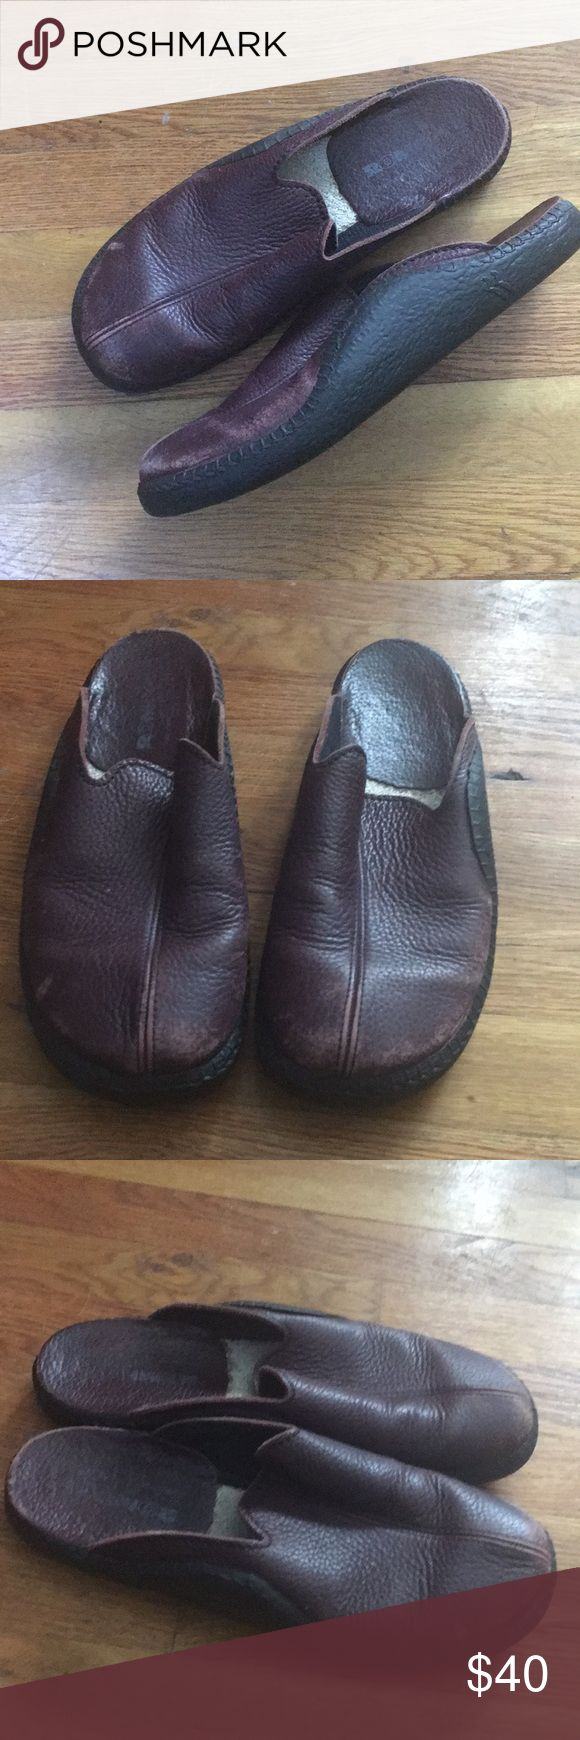 Romika slippers Leather mules or slippers with leather lining. Super lightweight and comfortable. I think a woman or man could wear these. They are very well made Romika Shoes Mules & Clogs